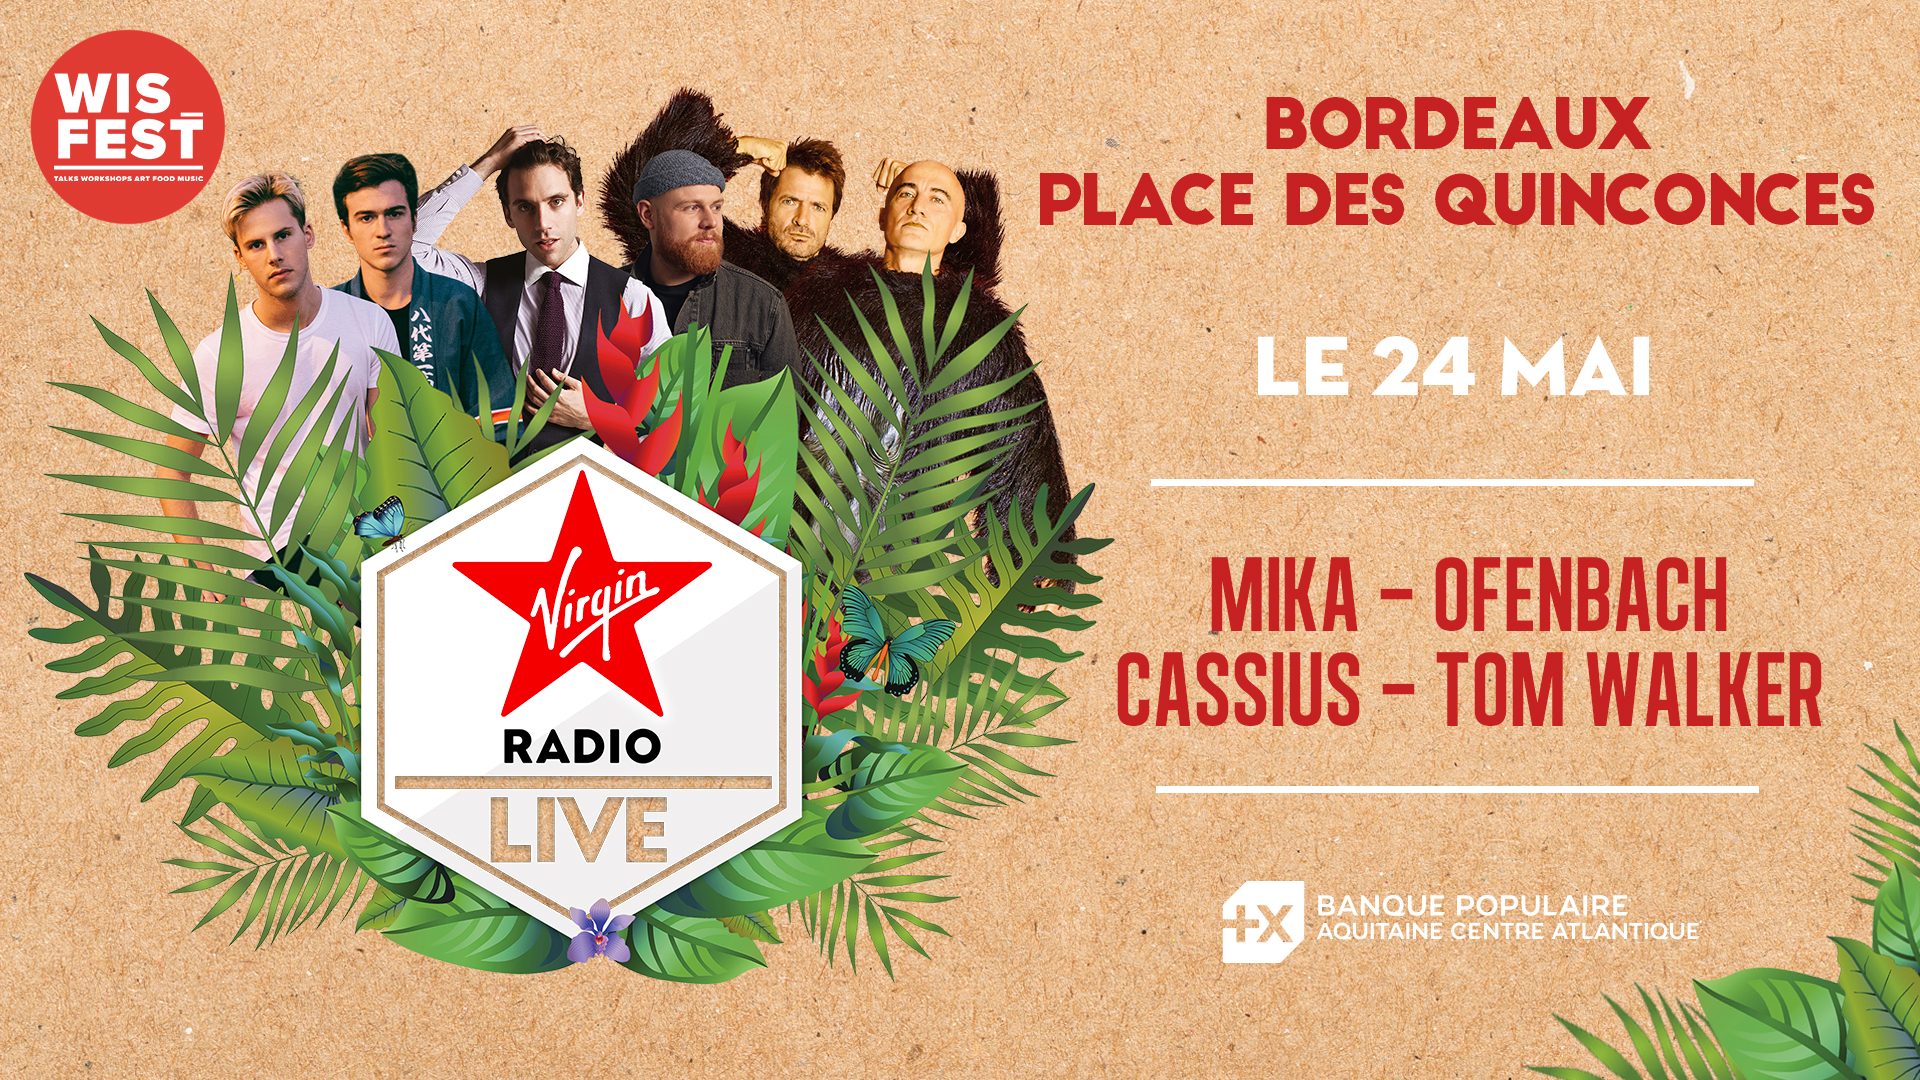 Europe 1 et Virgin Radio s'installent à Bordeaux